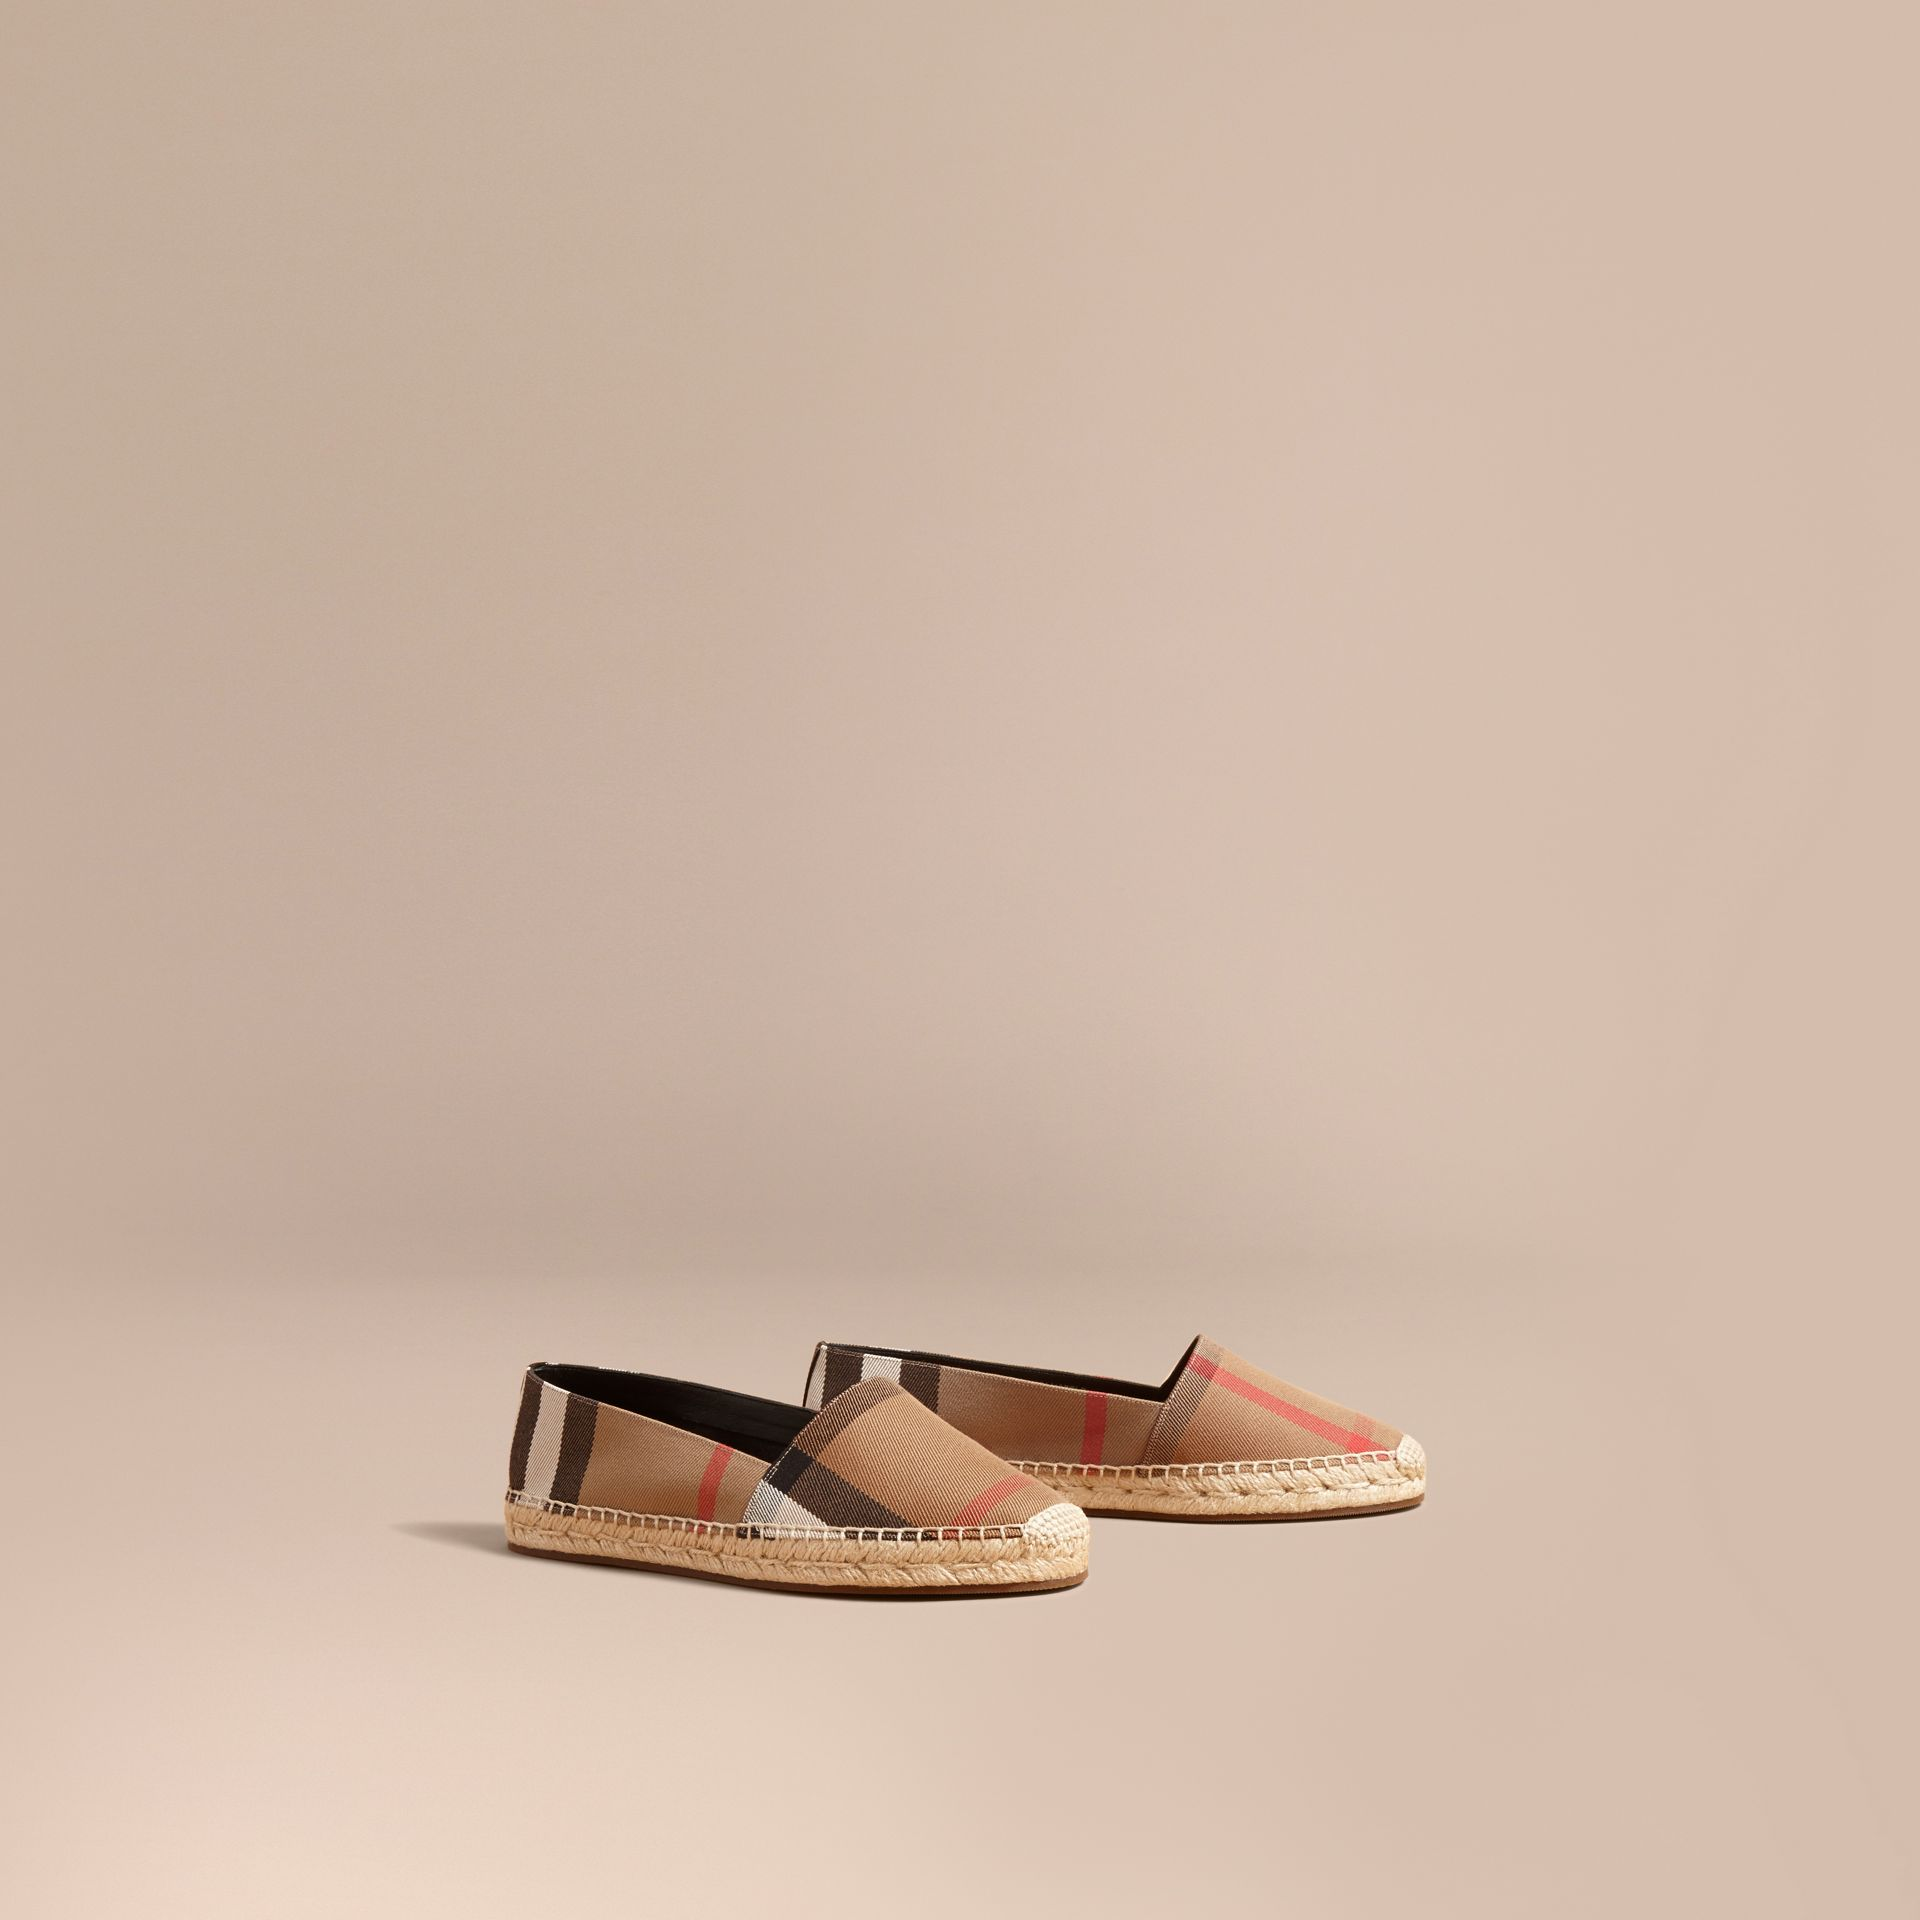 Leather Trim Canvas Check Espadrilles in Classic - Women | Burberry - gallery image 1